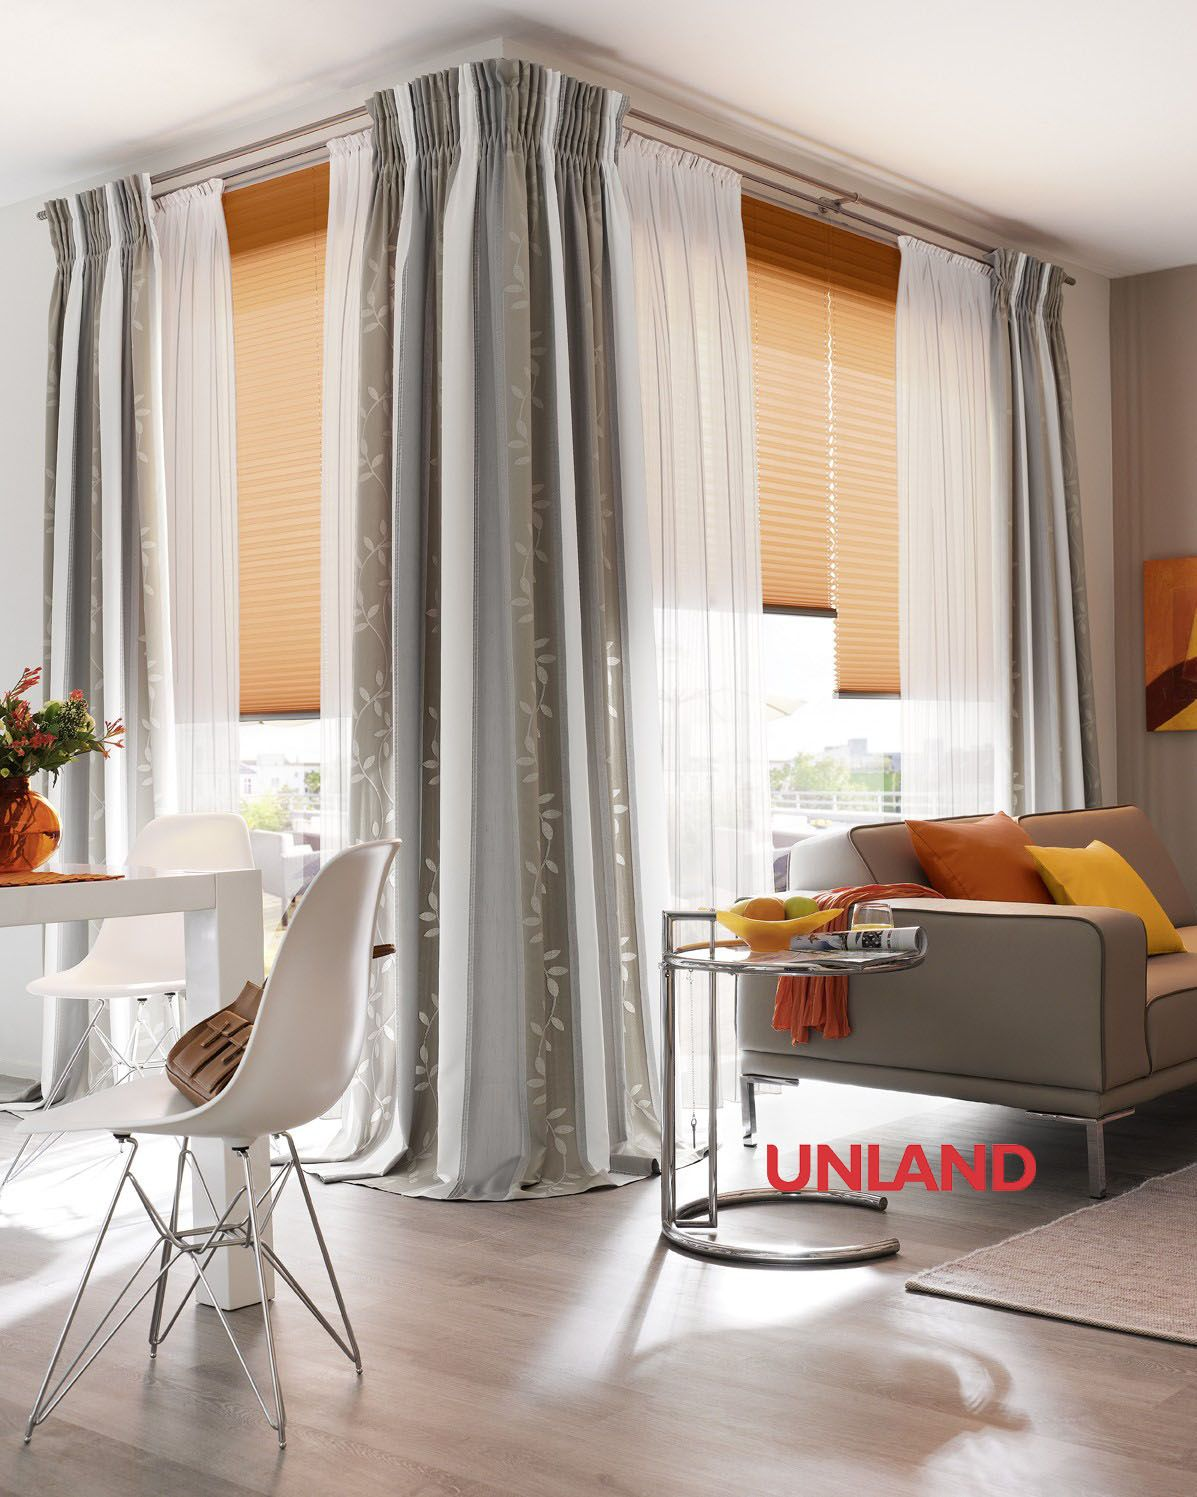 unland selene fensterideen vorhang gardinen und sonnenschutz curtains contract fabrics. Black Bedroom Furniture Sets. Home Design Ideas